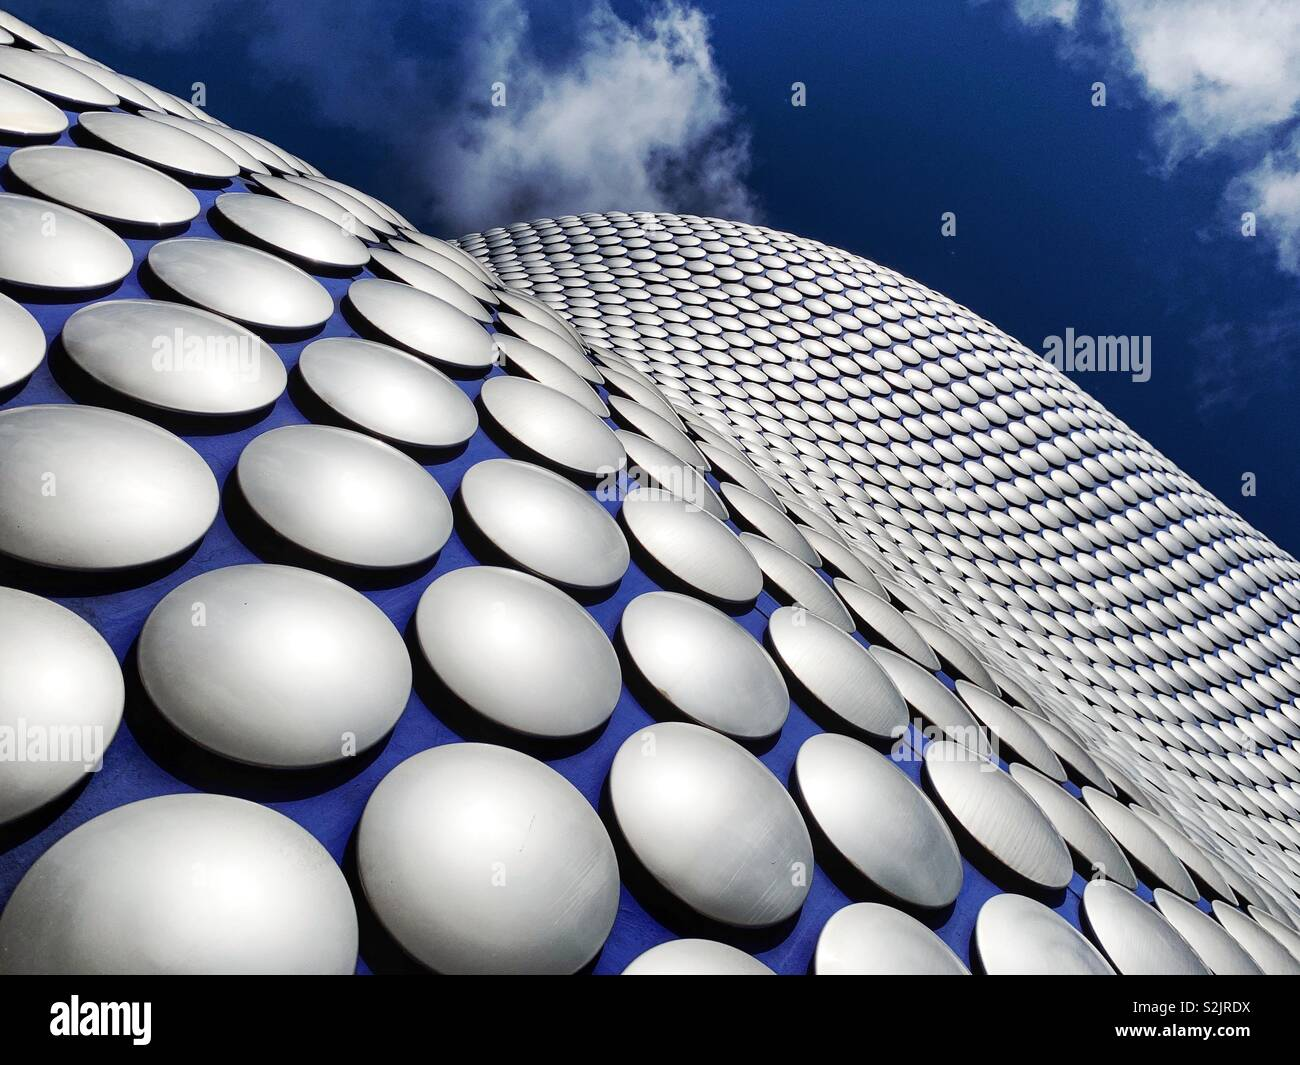 Selfridges, Birmingham, UK - Stock Image